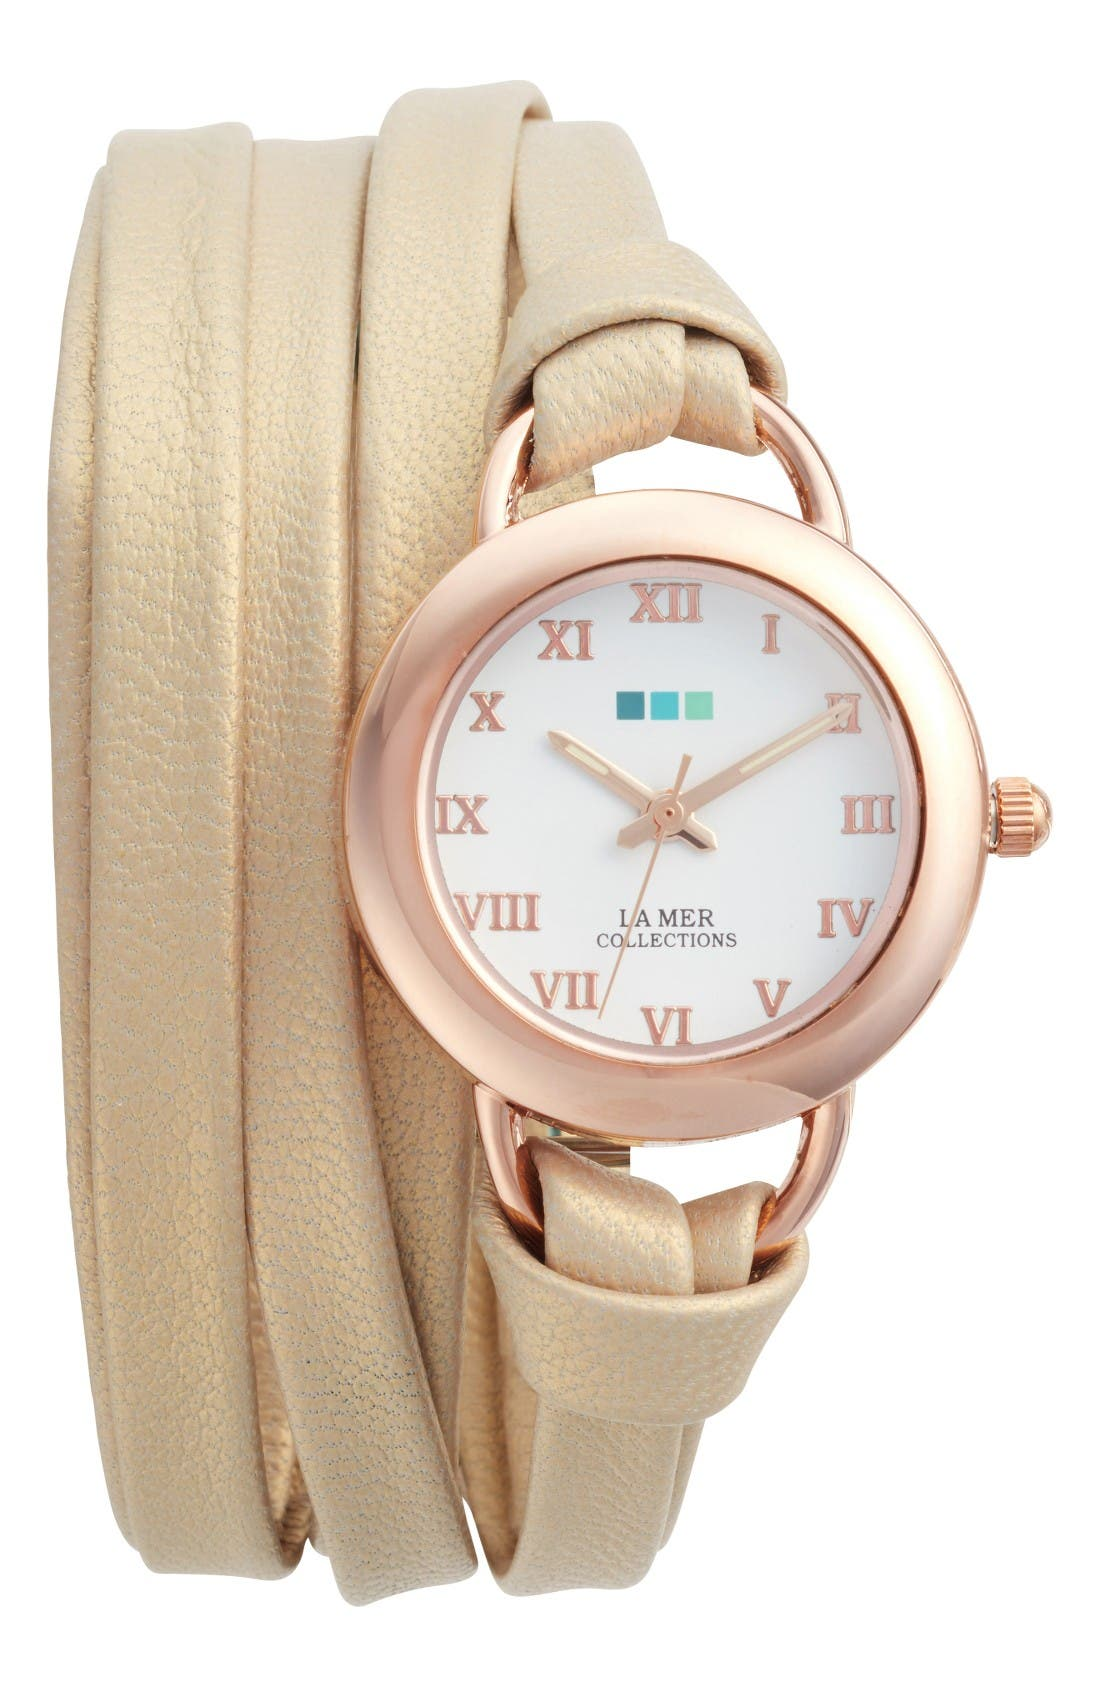 Saturn Wrap Leather Strap Watch, 25mm,                         Main,                         color, Tan/ White/ Rose Gold